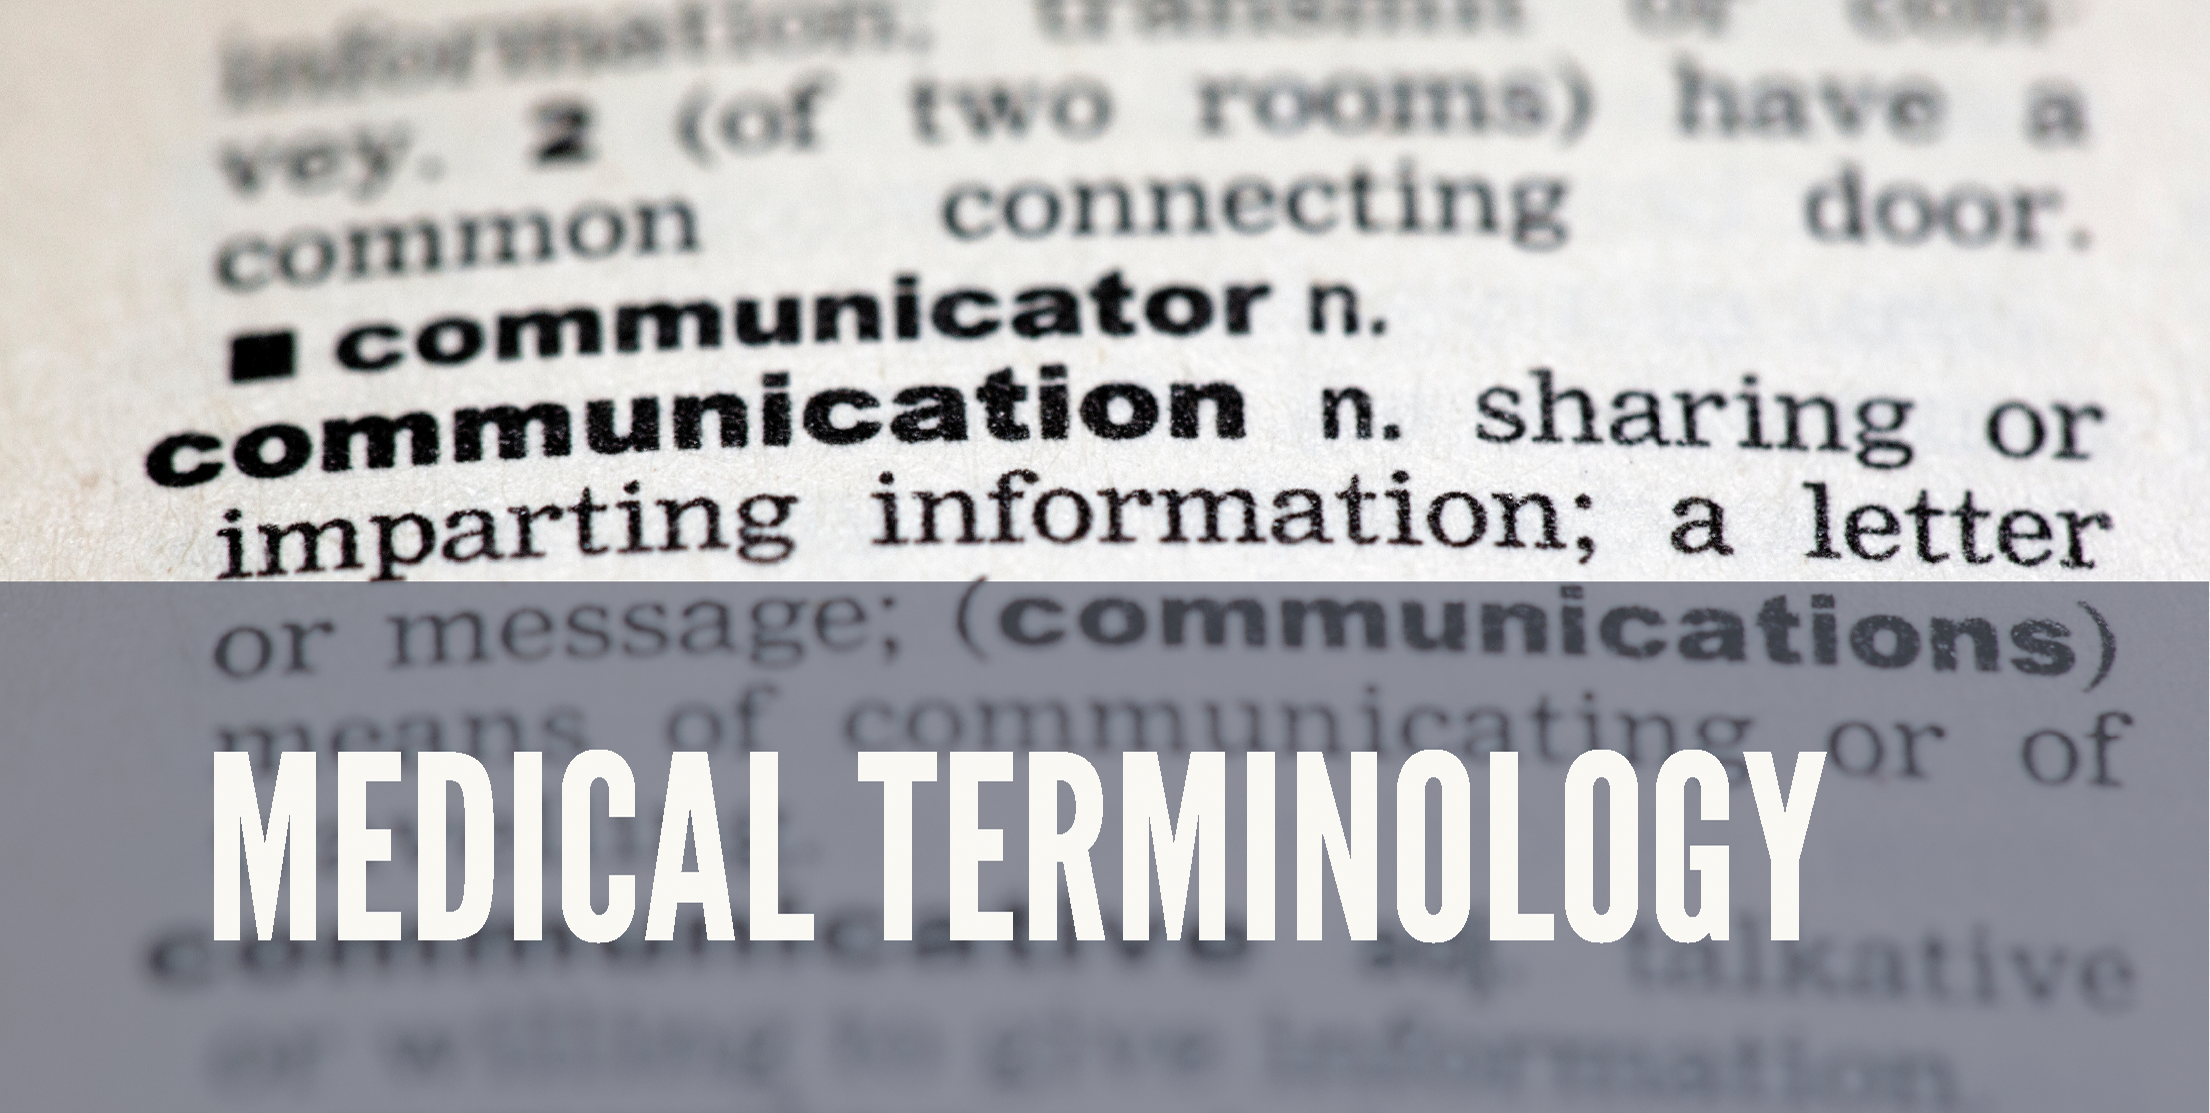 Medical Terminology - This medical terminology course covers the medical language and terminology used by health care professionals everywhere. In easy to review lessons, you'll find our user- friendly format will give you a solid foundation in medical language. You will analyze individual word parts such as prefixes, suffixes and word roots, along with learning body system dynamics, basic medical language, body orientation, health, wellness, and disease terms. You will learn the basic components of medical terminology as it relates to each body system.Course Duration: 3 weeks